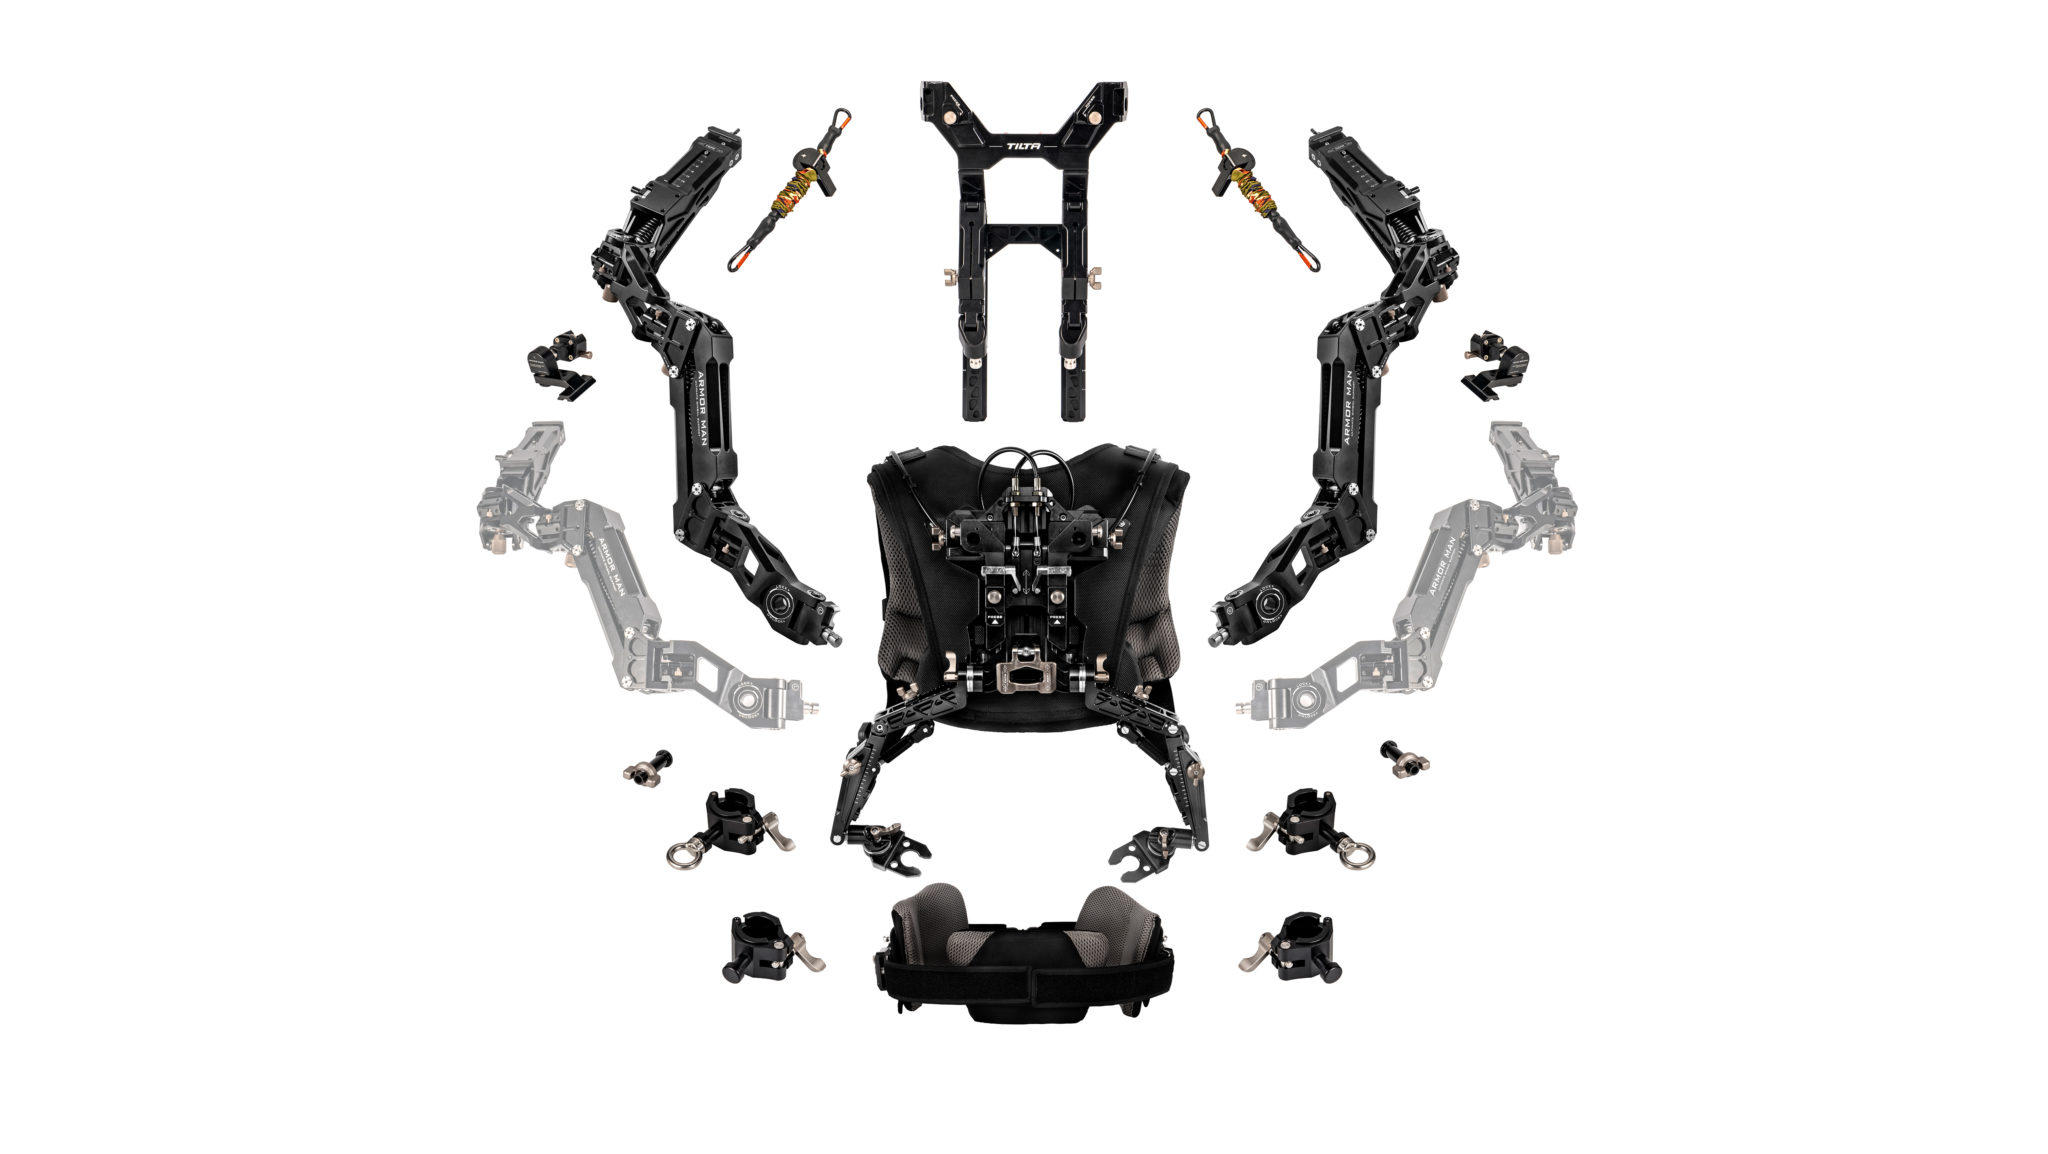 Armor-Man-3.0-Gimbal-Support-System-ARM-T03_Legacy-2-2048×1154